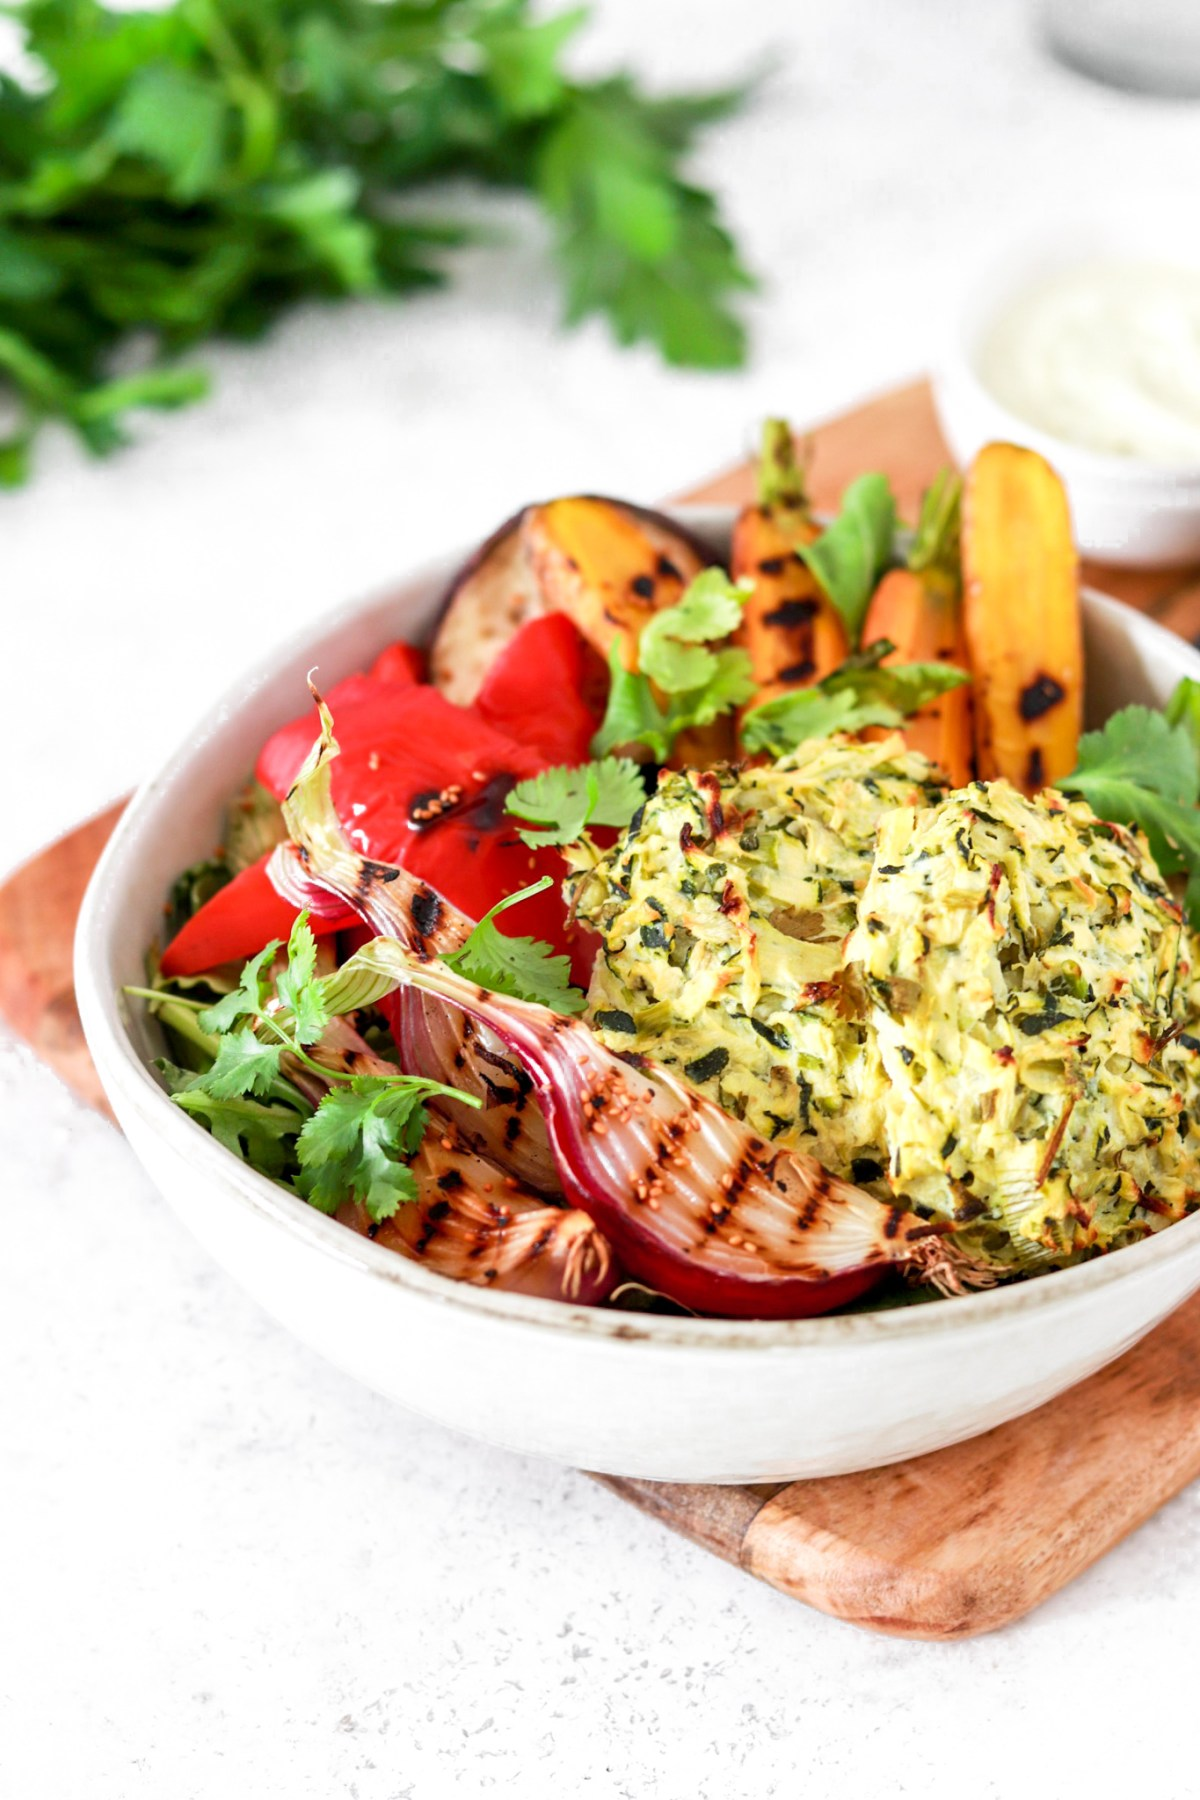 Zucchini & Ricotta Fritter Salad with Grilled Vegetables (Gluten, Grain Free & Low Carb) From Close Up